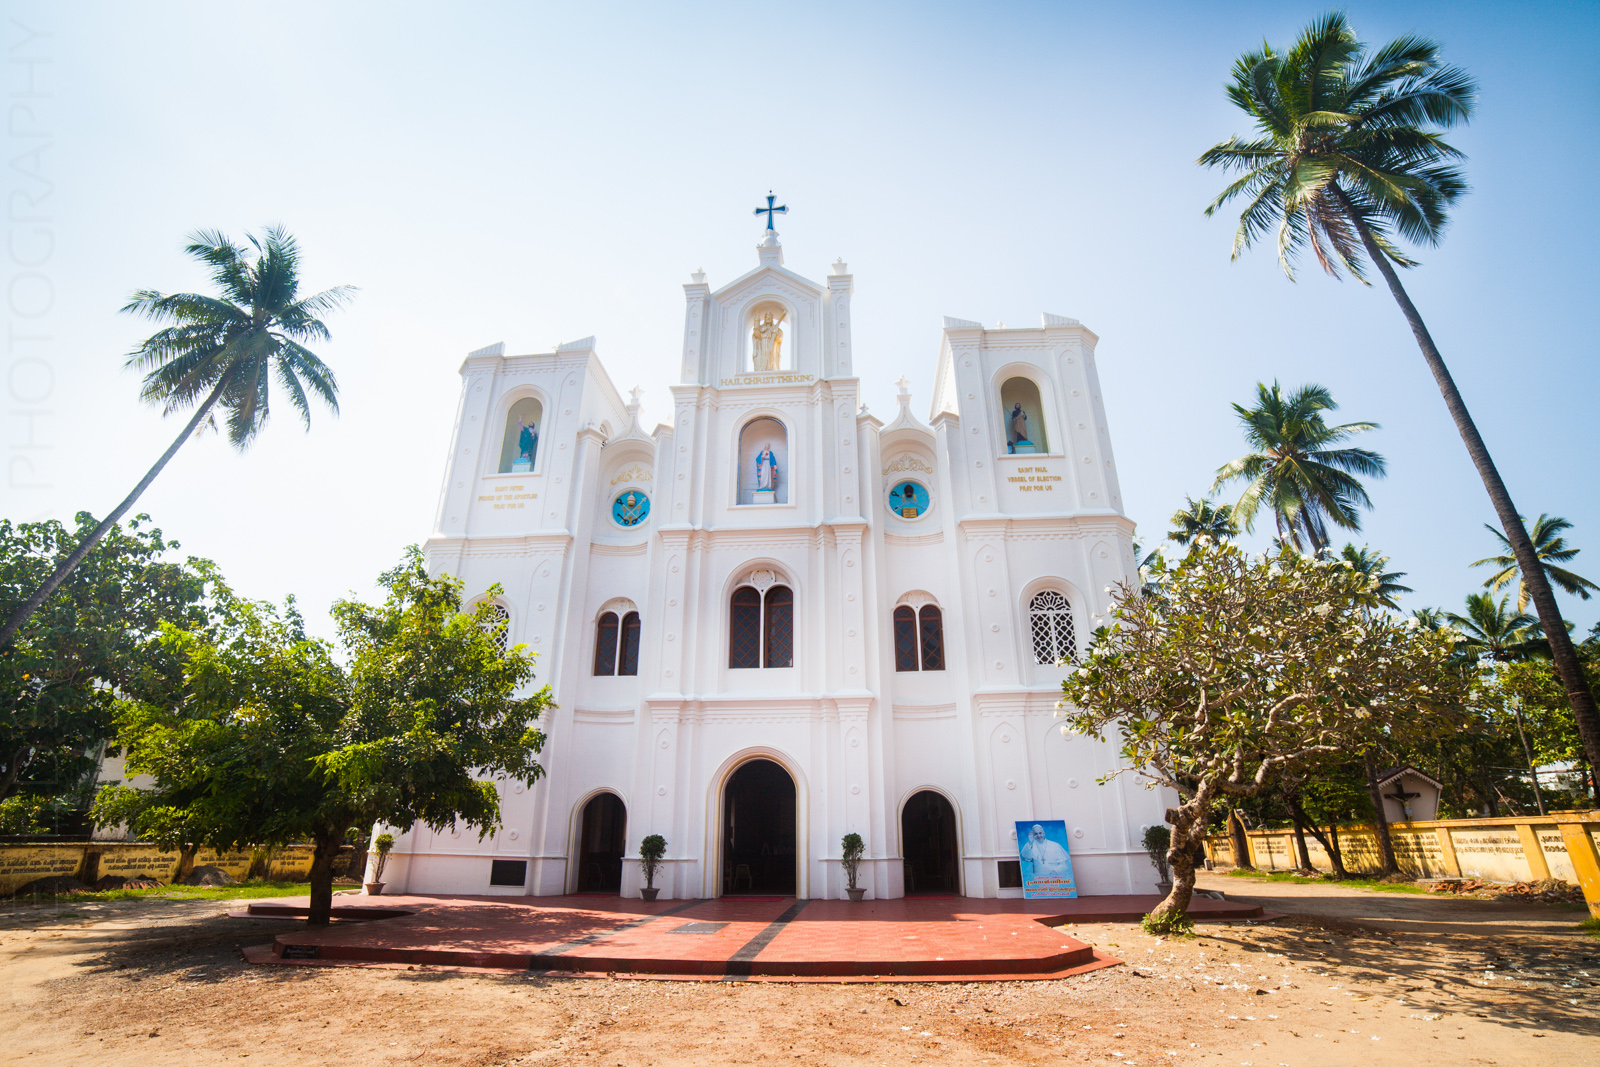 St Peter's & St Paul's Church, Fort Kochi